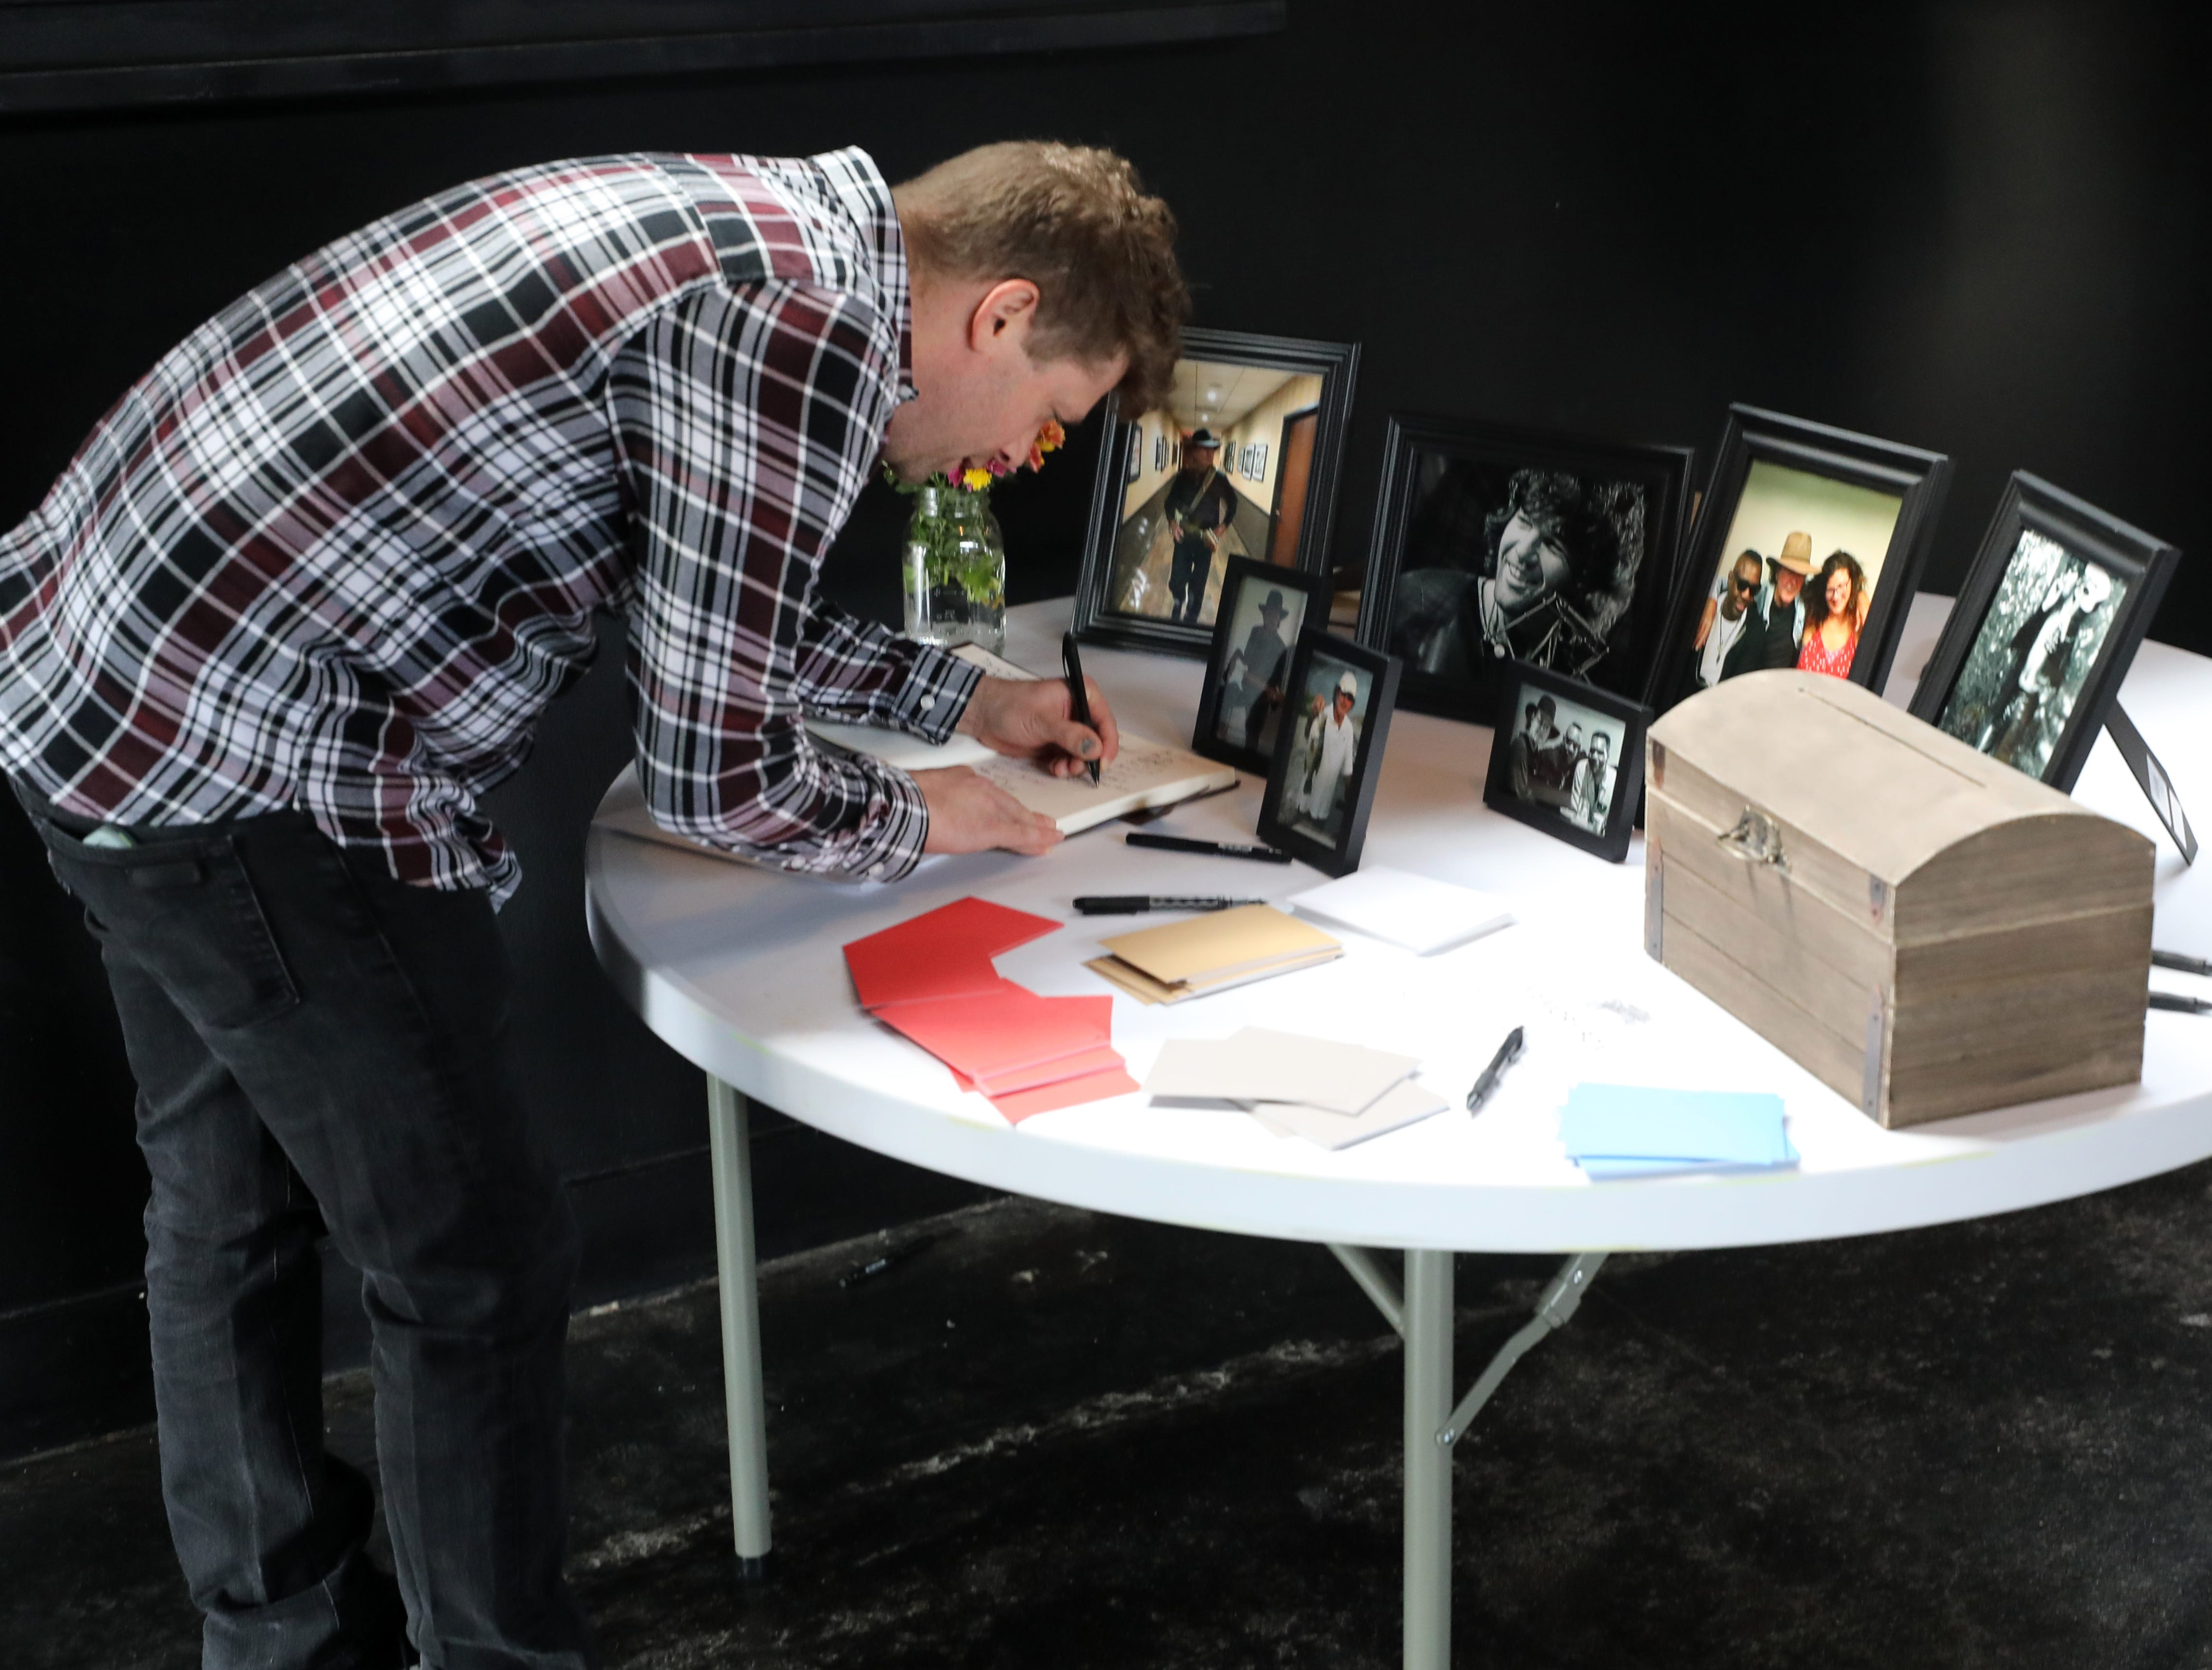 Rush Davenport signs the guest book at a Celebration of Life service held for singer-songwriter Tony Joe White at Marathon Music Works Wednesday, October 31, 2018.